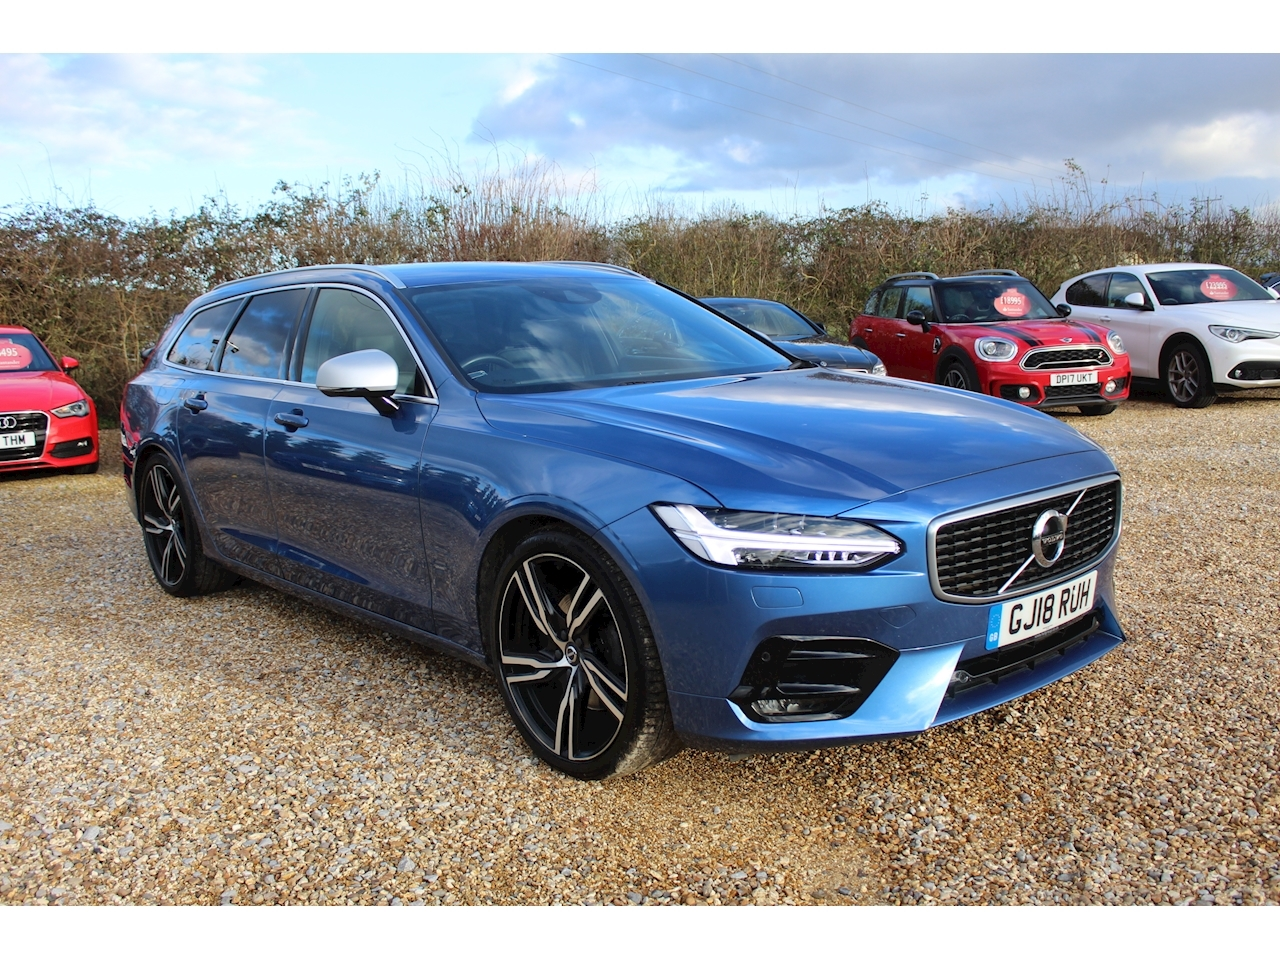 Volvo 2.0 D4 R-Design Pro Estate 5dr Diesel Auto (s/s) (190 ps)